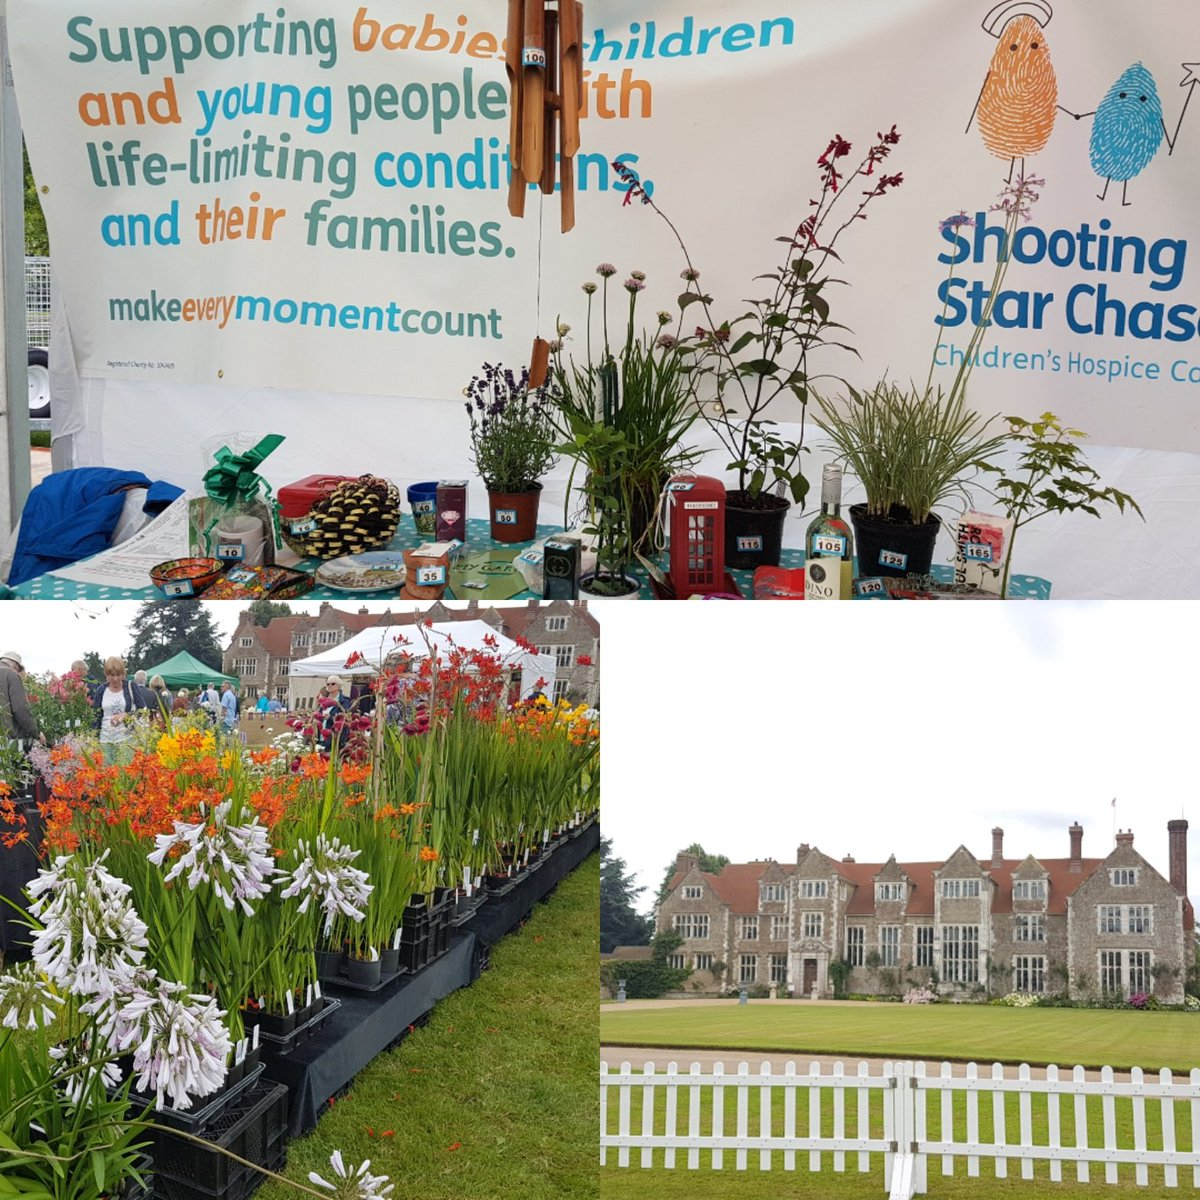 RT @Alice_CFR Lovely day at @LoseleyGdnShow at @LoseleyPark in support of @SSChospices 🌹🌺🌻🌼🌷